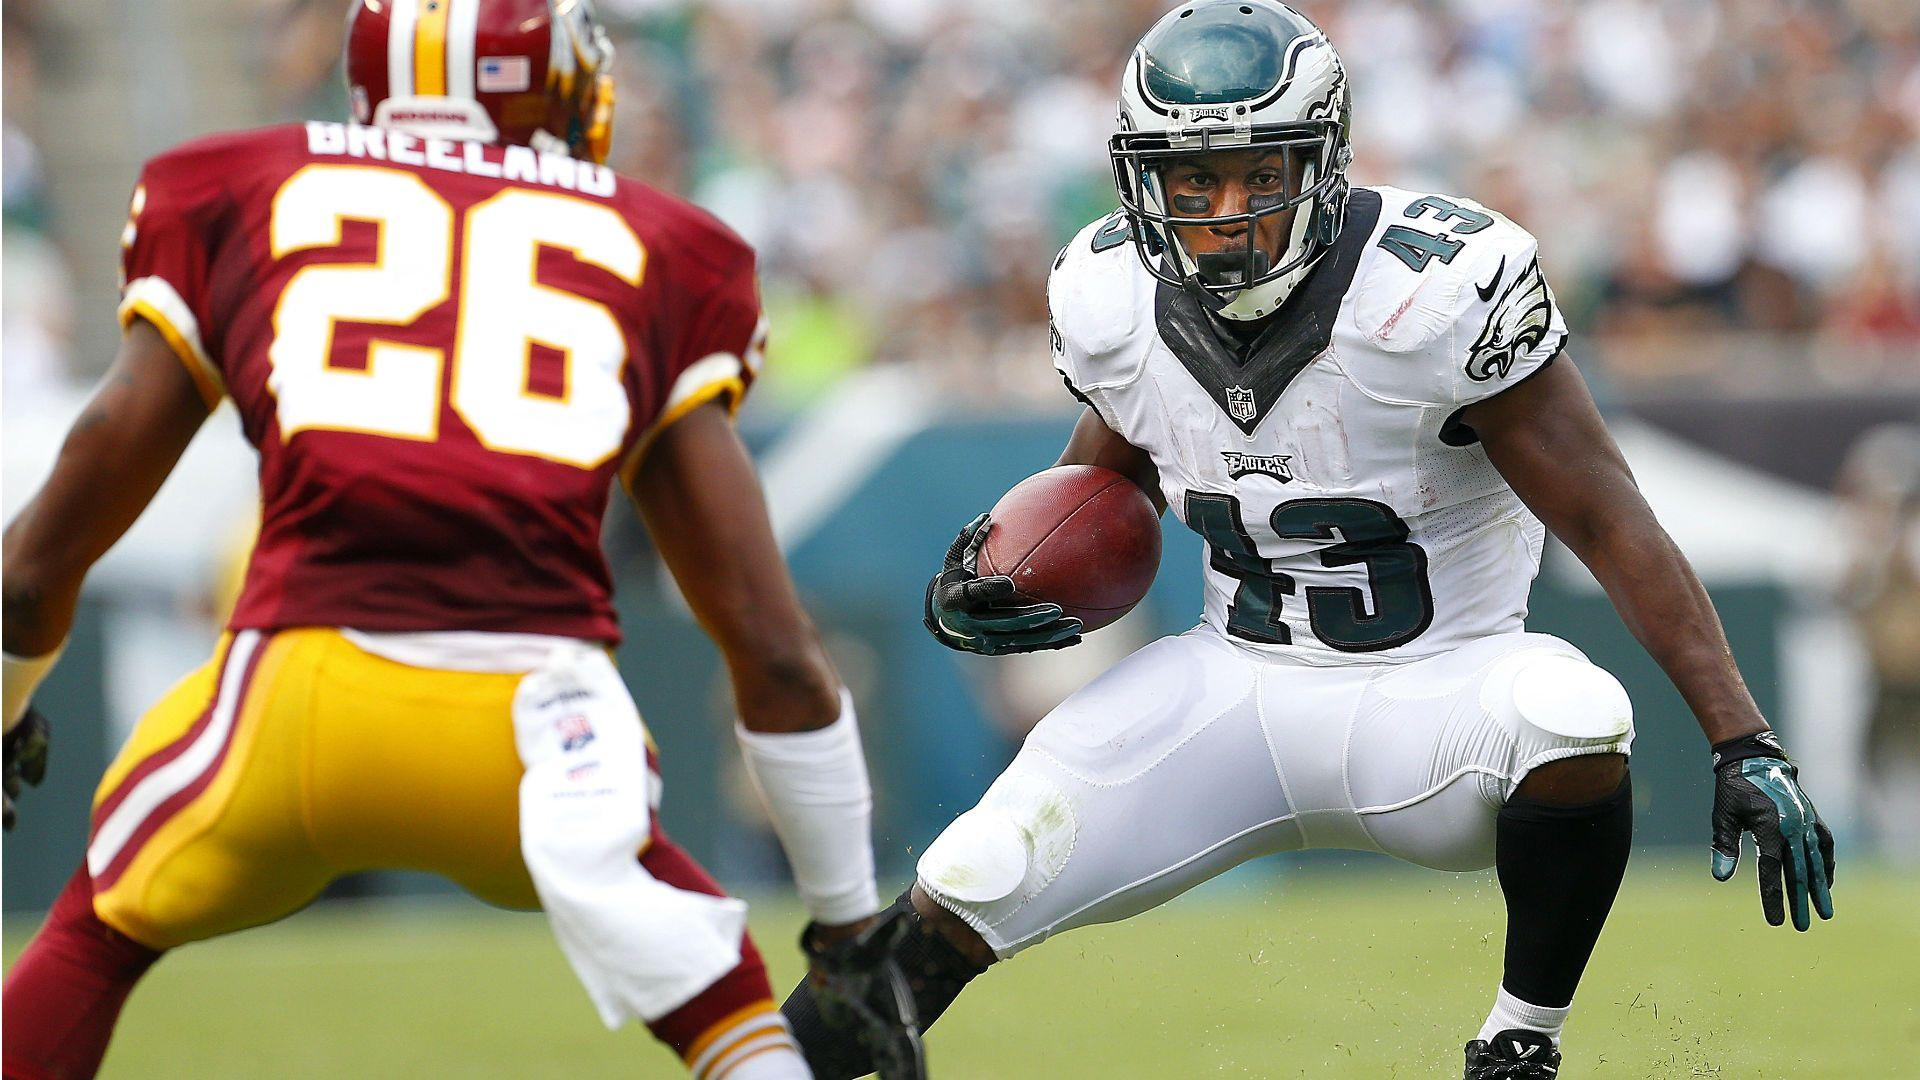 Eagles' Sproles felt disrespected by Saints | NFL | Sporting News